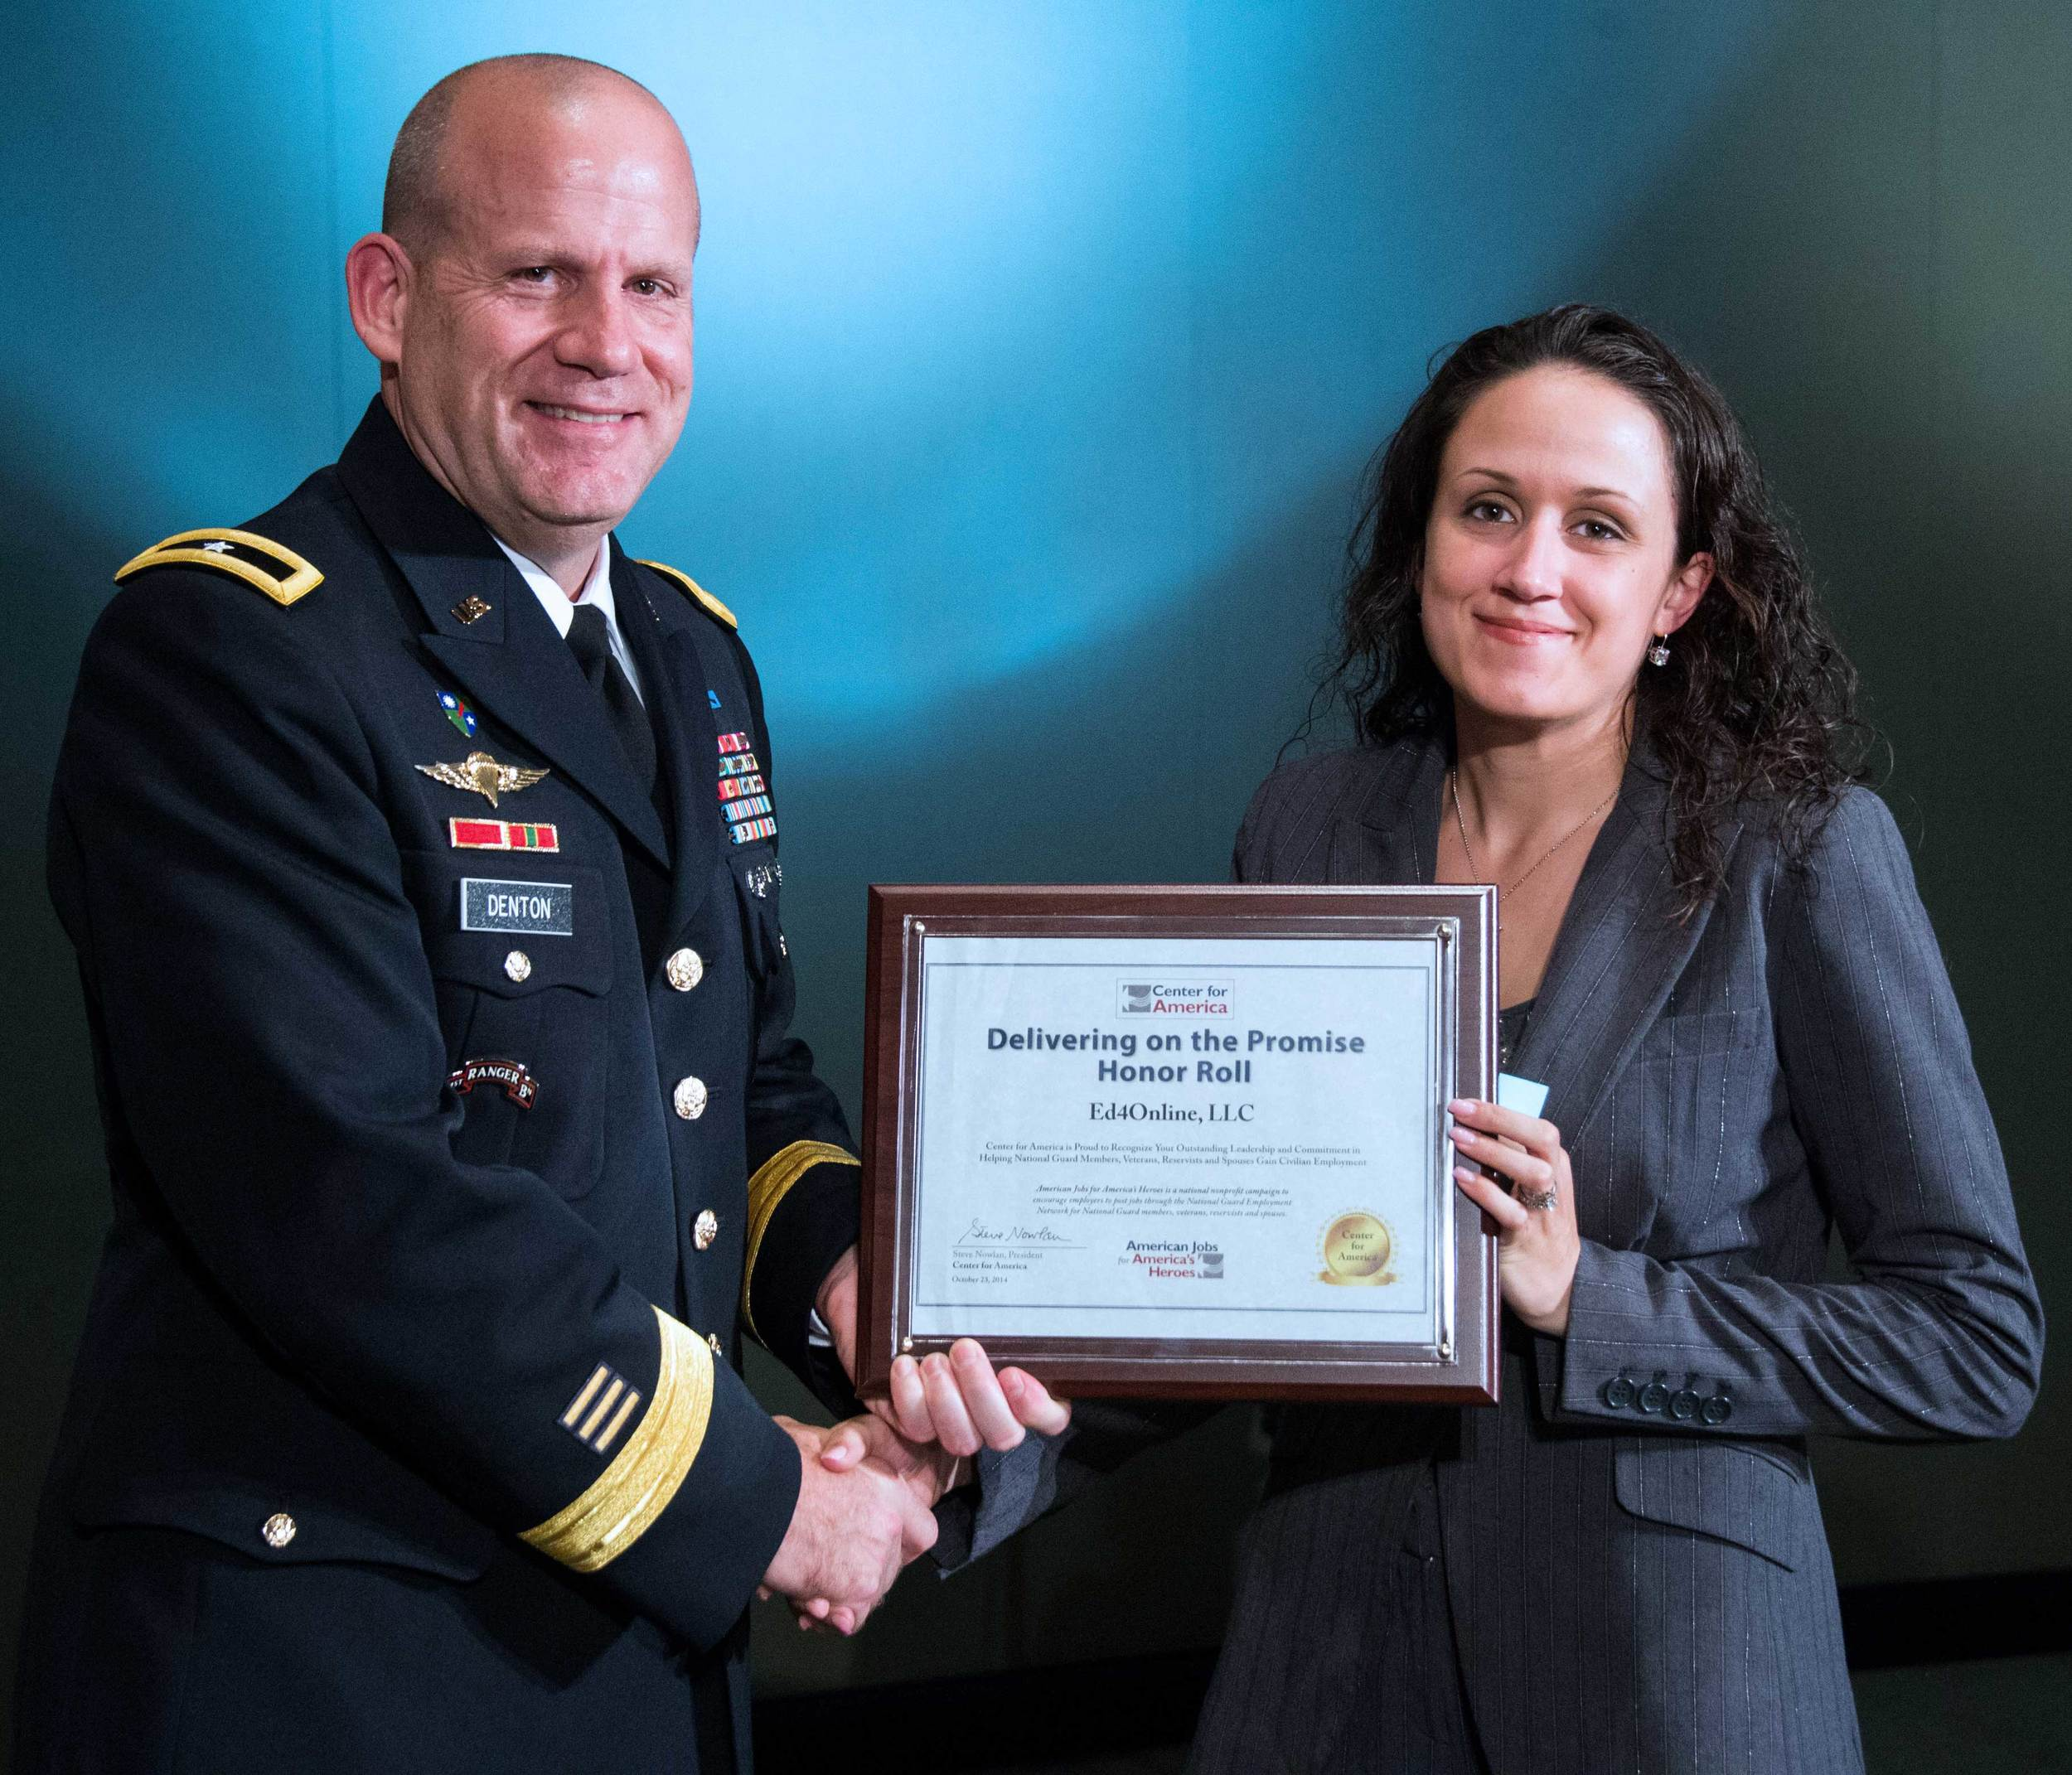 BG Ivan Denton presents the CFA Award to Angela Caban, Marketing Specialist.